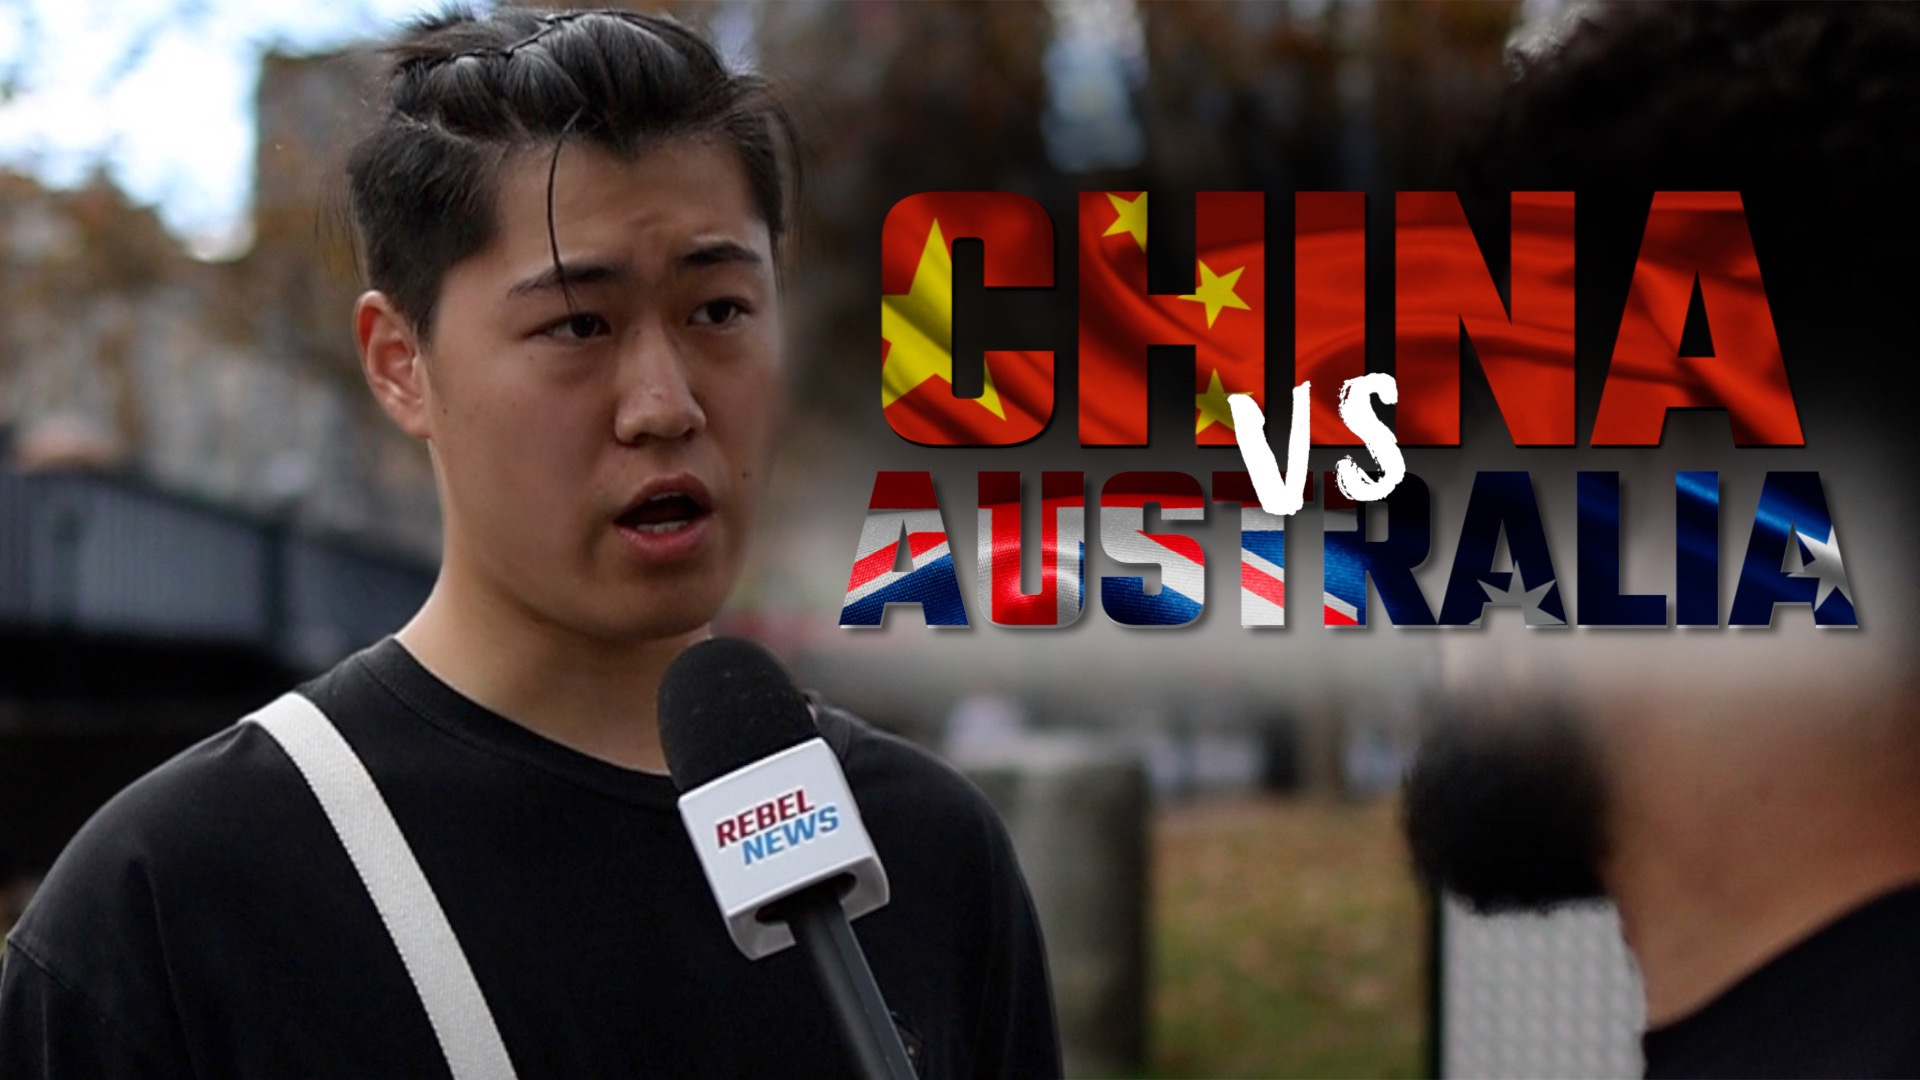 WATCH: This is why China is BETTER than Australia according to one student